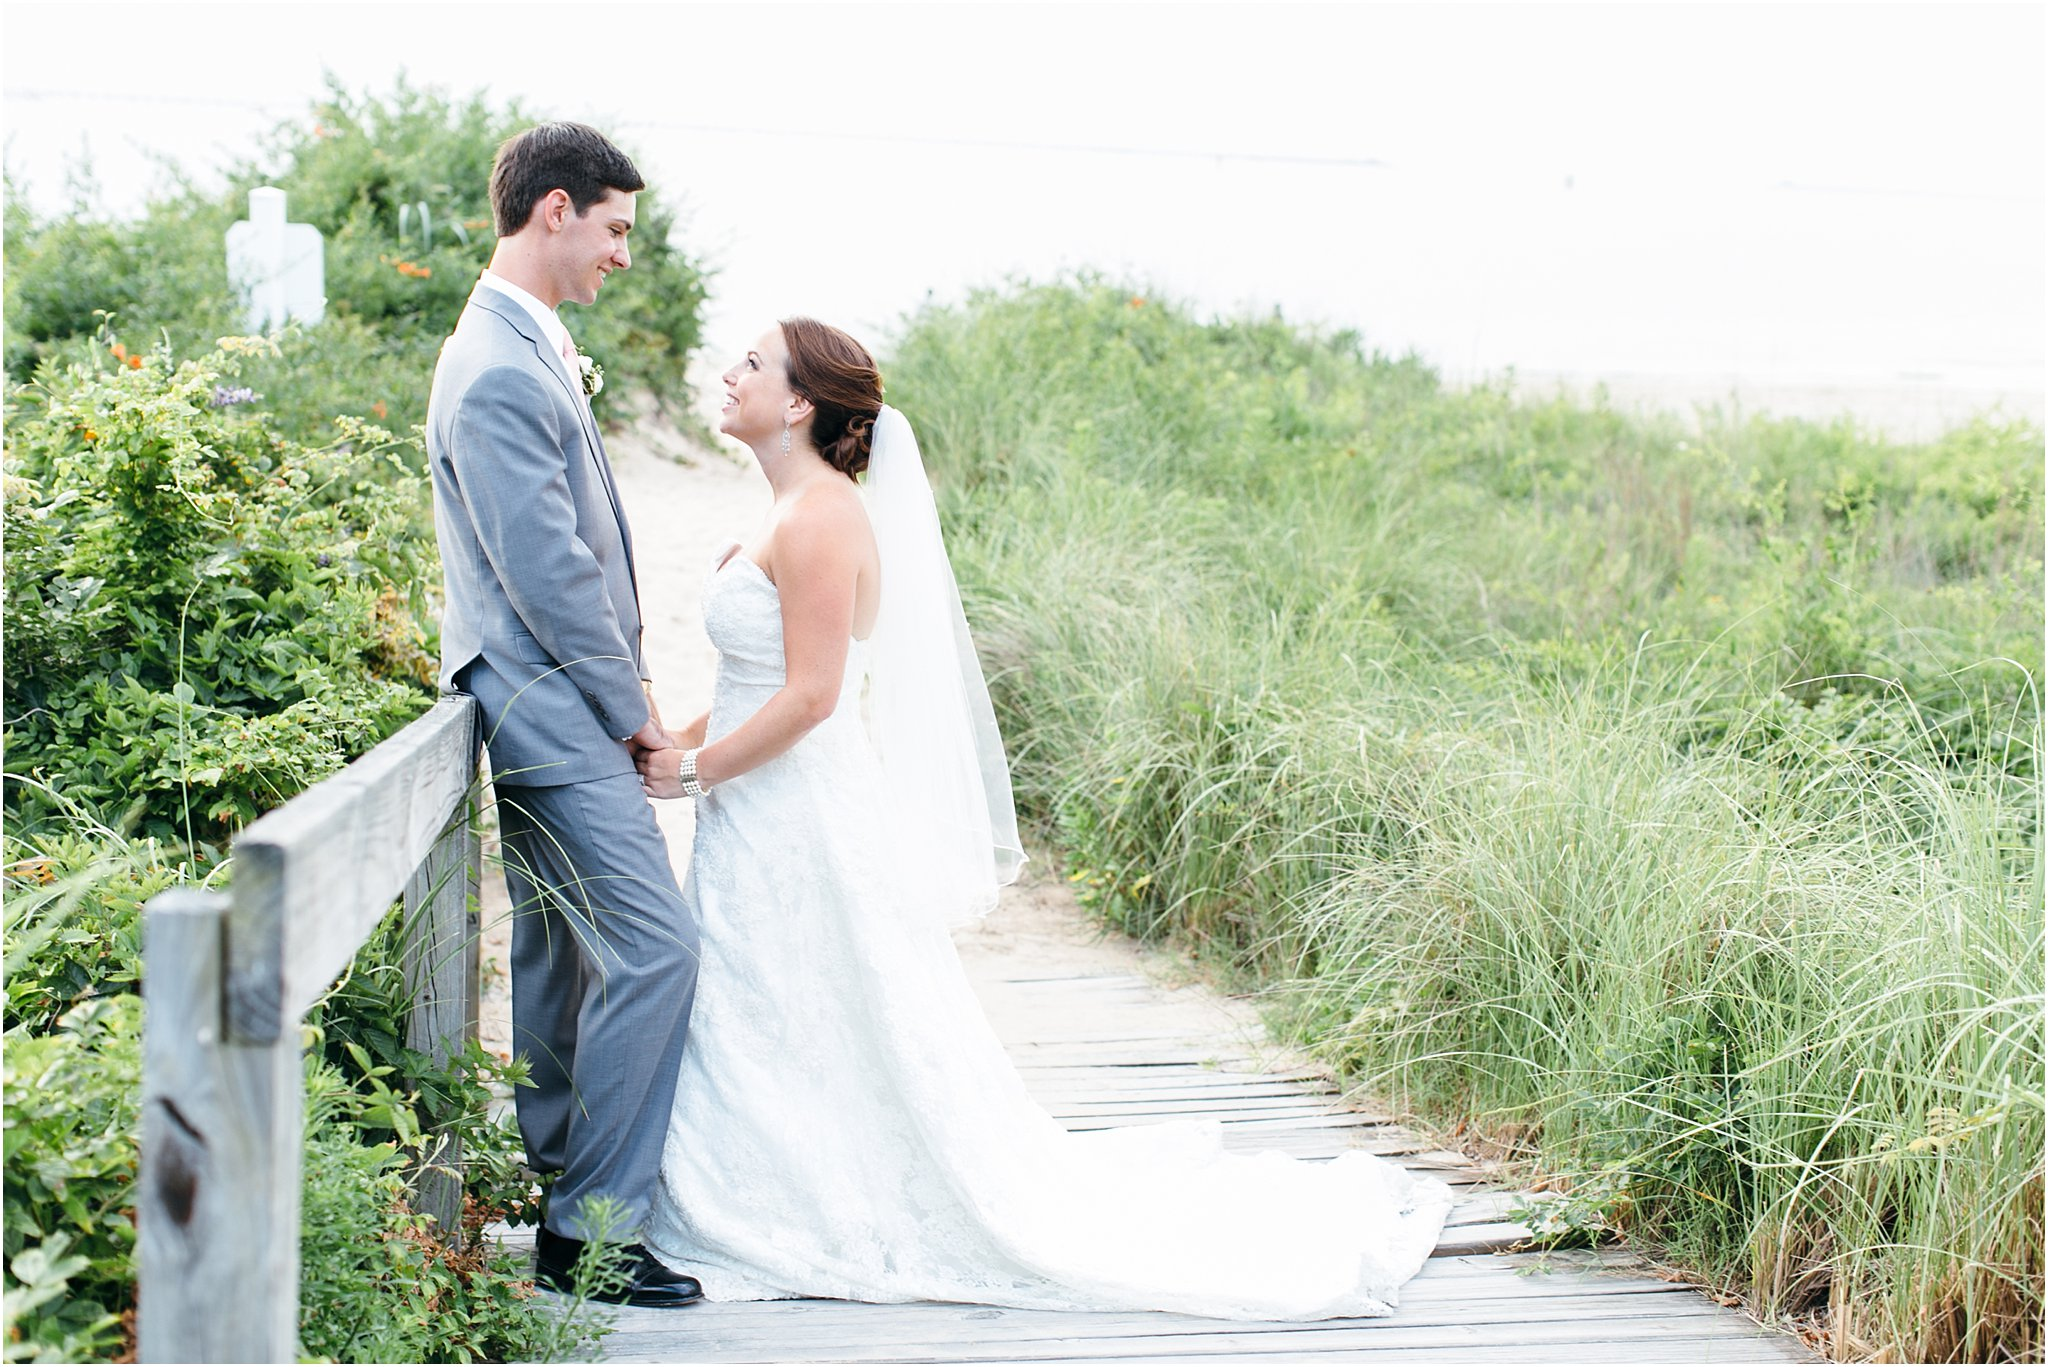 jessica_ryan_photography_wedding_photography_virginiabeach_virginia_candid_authentic_wedding_portraits_marina_shores_yacht_club_chesapeake_bay_1904